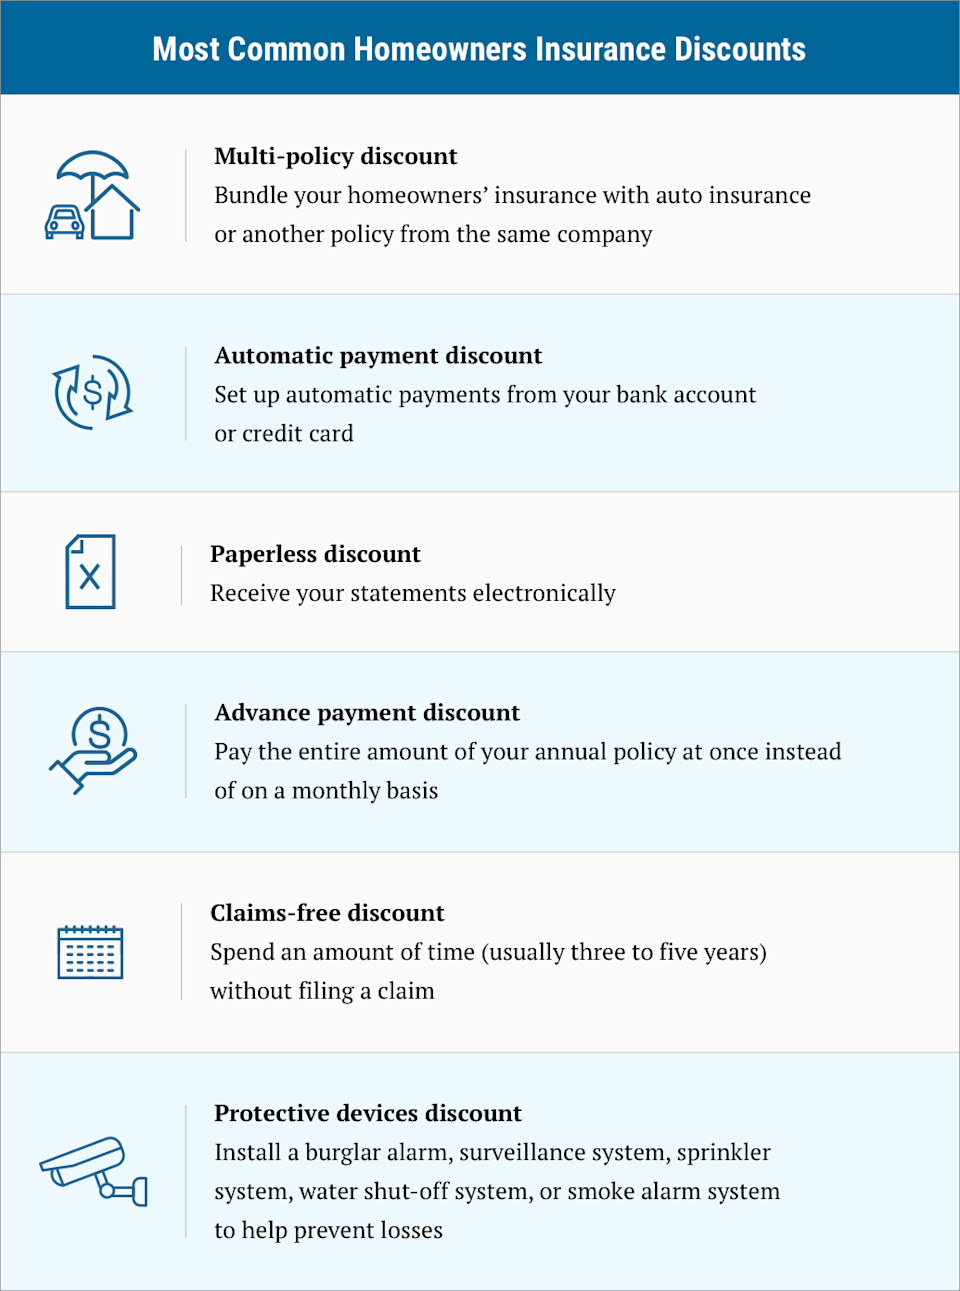 infographic on the most common homeowners insurance discounts